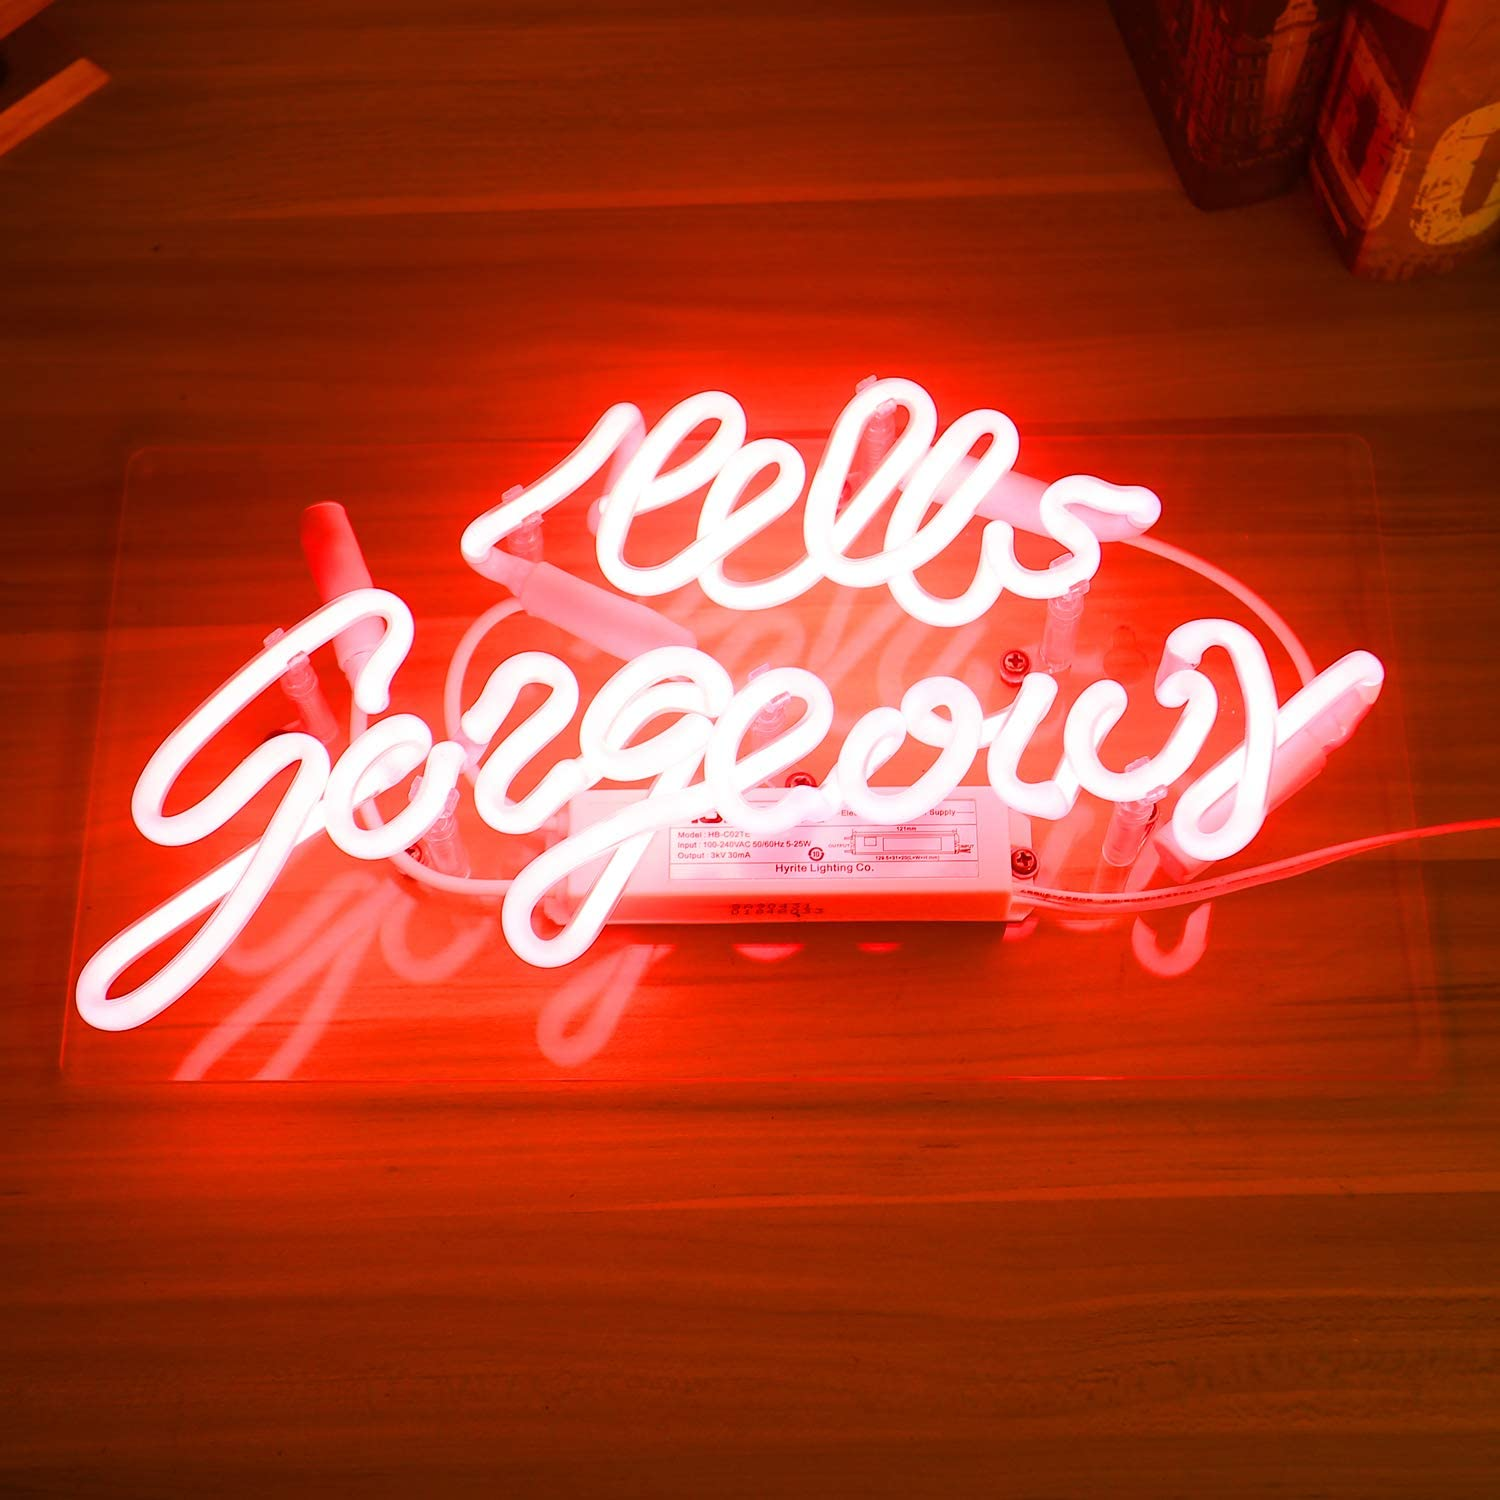 Pink Hello Gorgeous Neon Sign Man Cave Room Decor Night Light Love Gifts Real Glass Hand Made 14.5